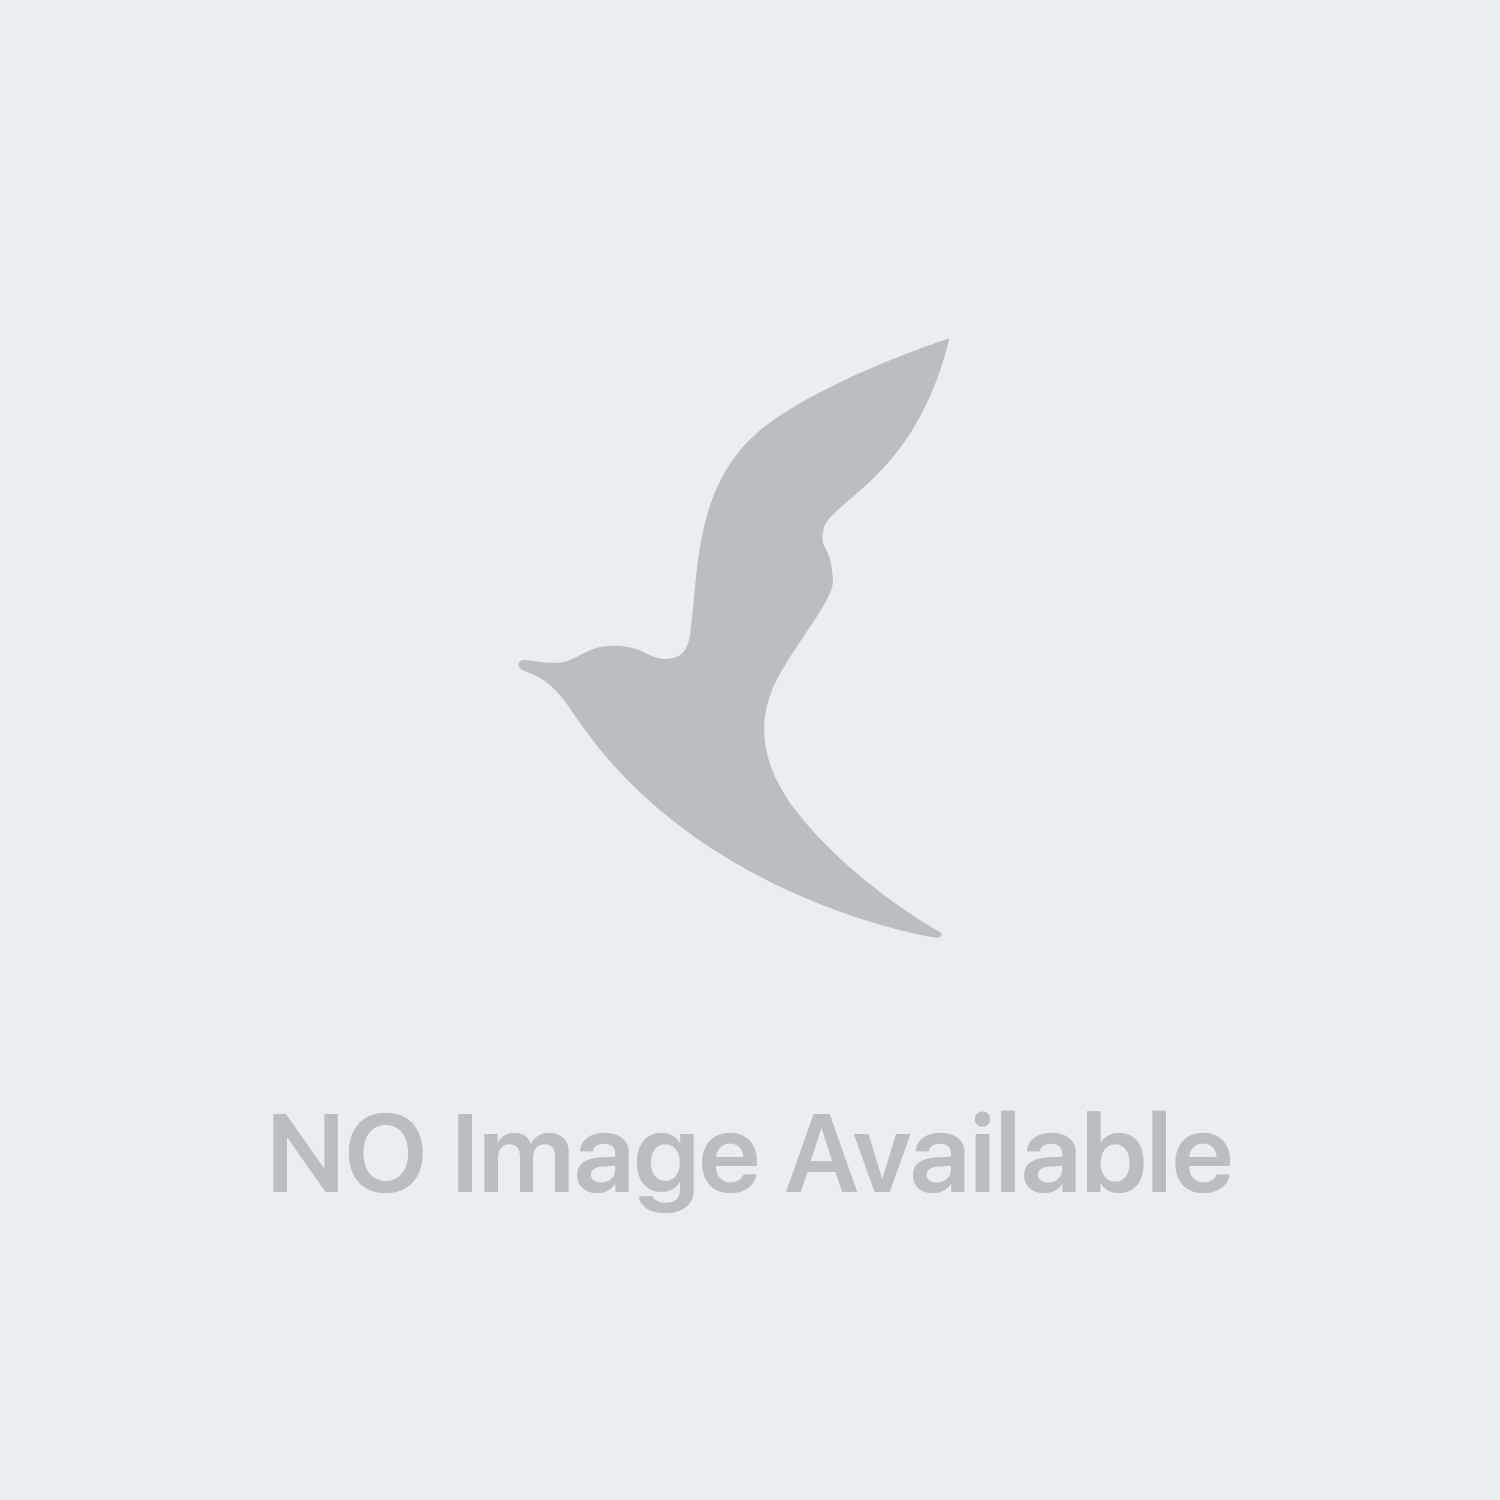 Tisana Kelemata 40 Compresse Rivestite 16 mg